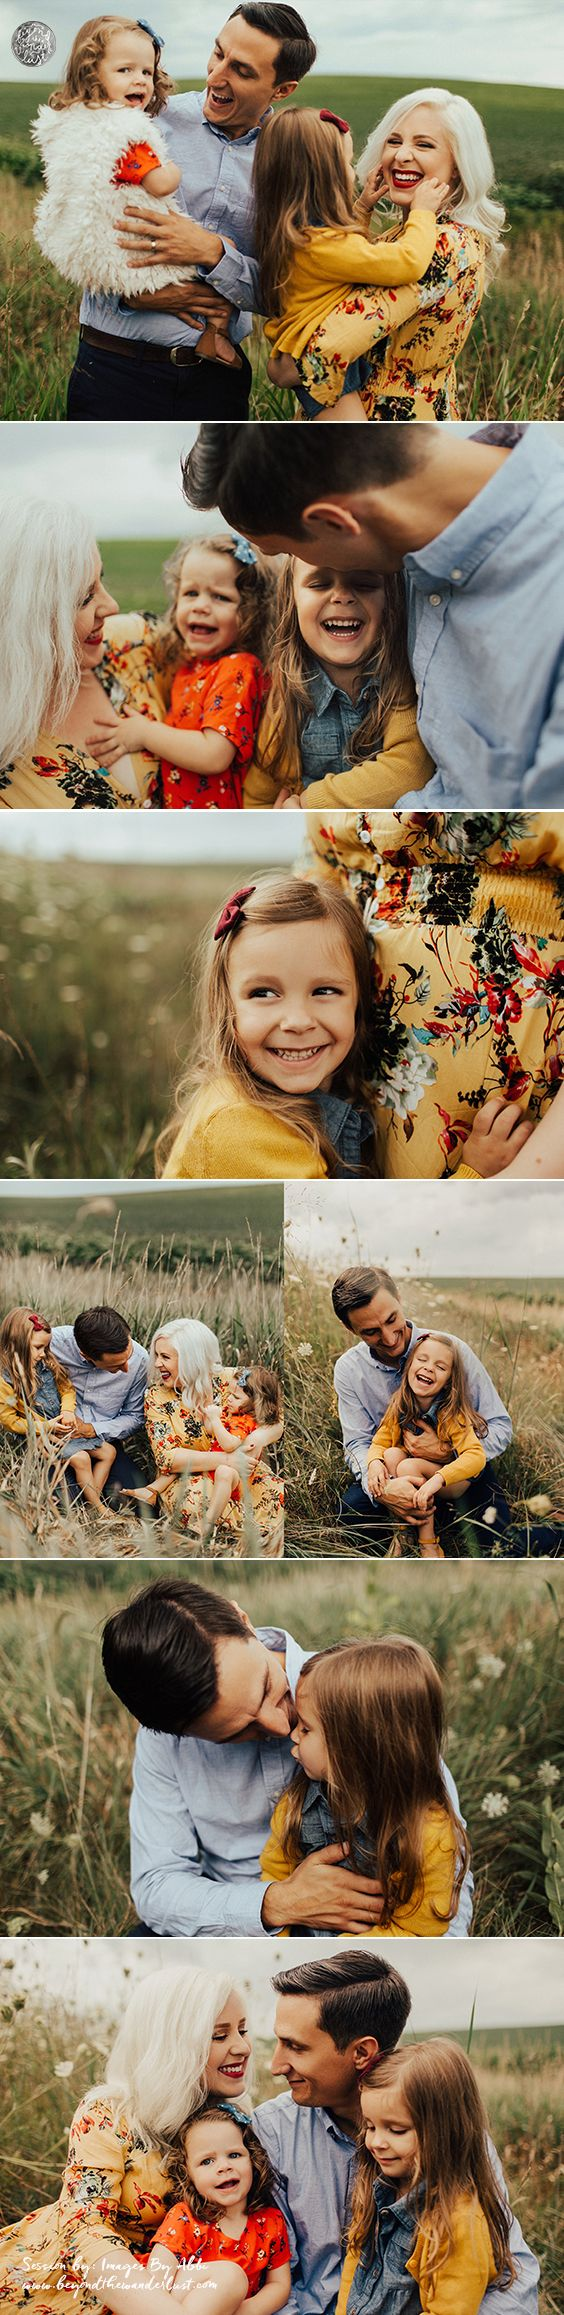 Need family picture ideas? View this family of 4 boho session to get fall family picture ideas. BOHO FAMILY STYLE. FAMILY OF 4 POSES.